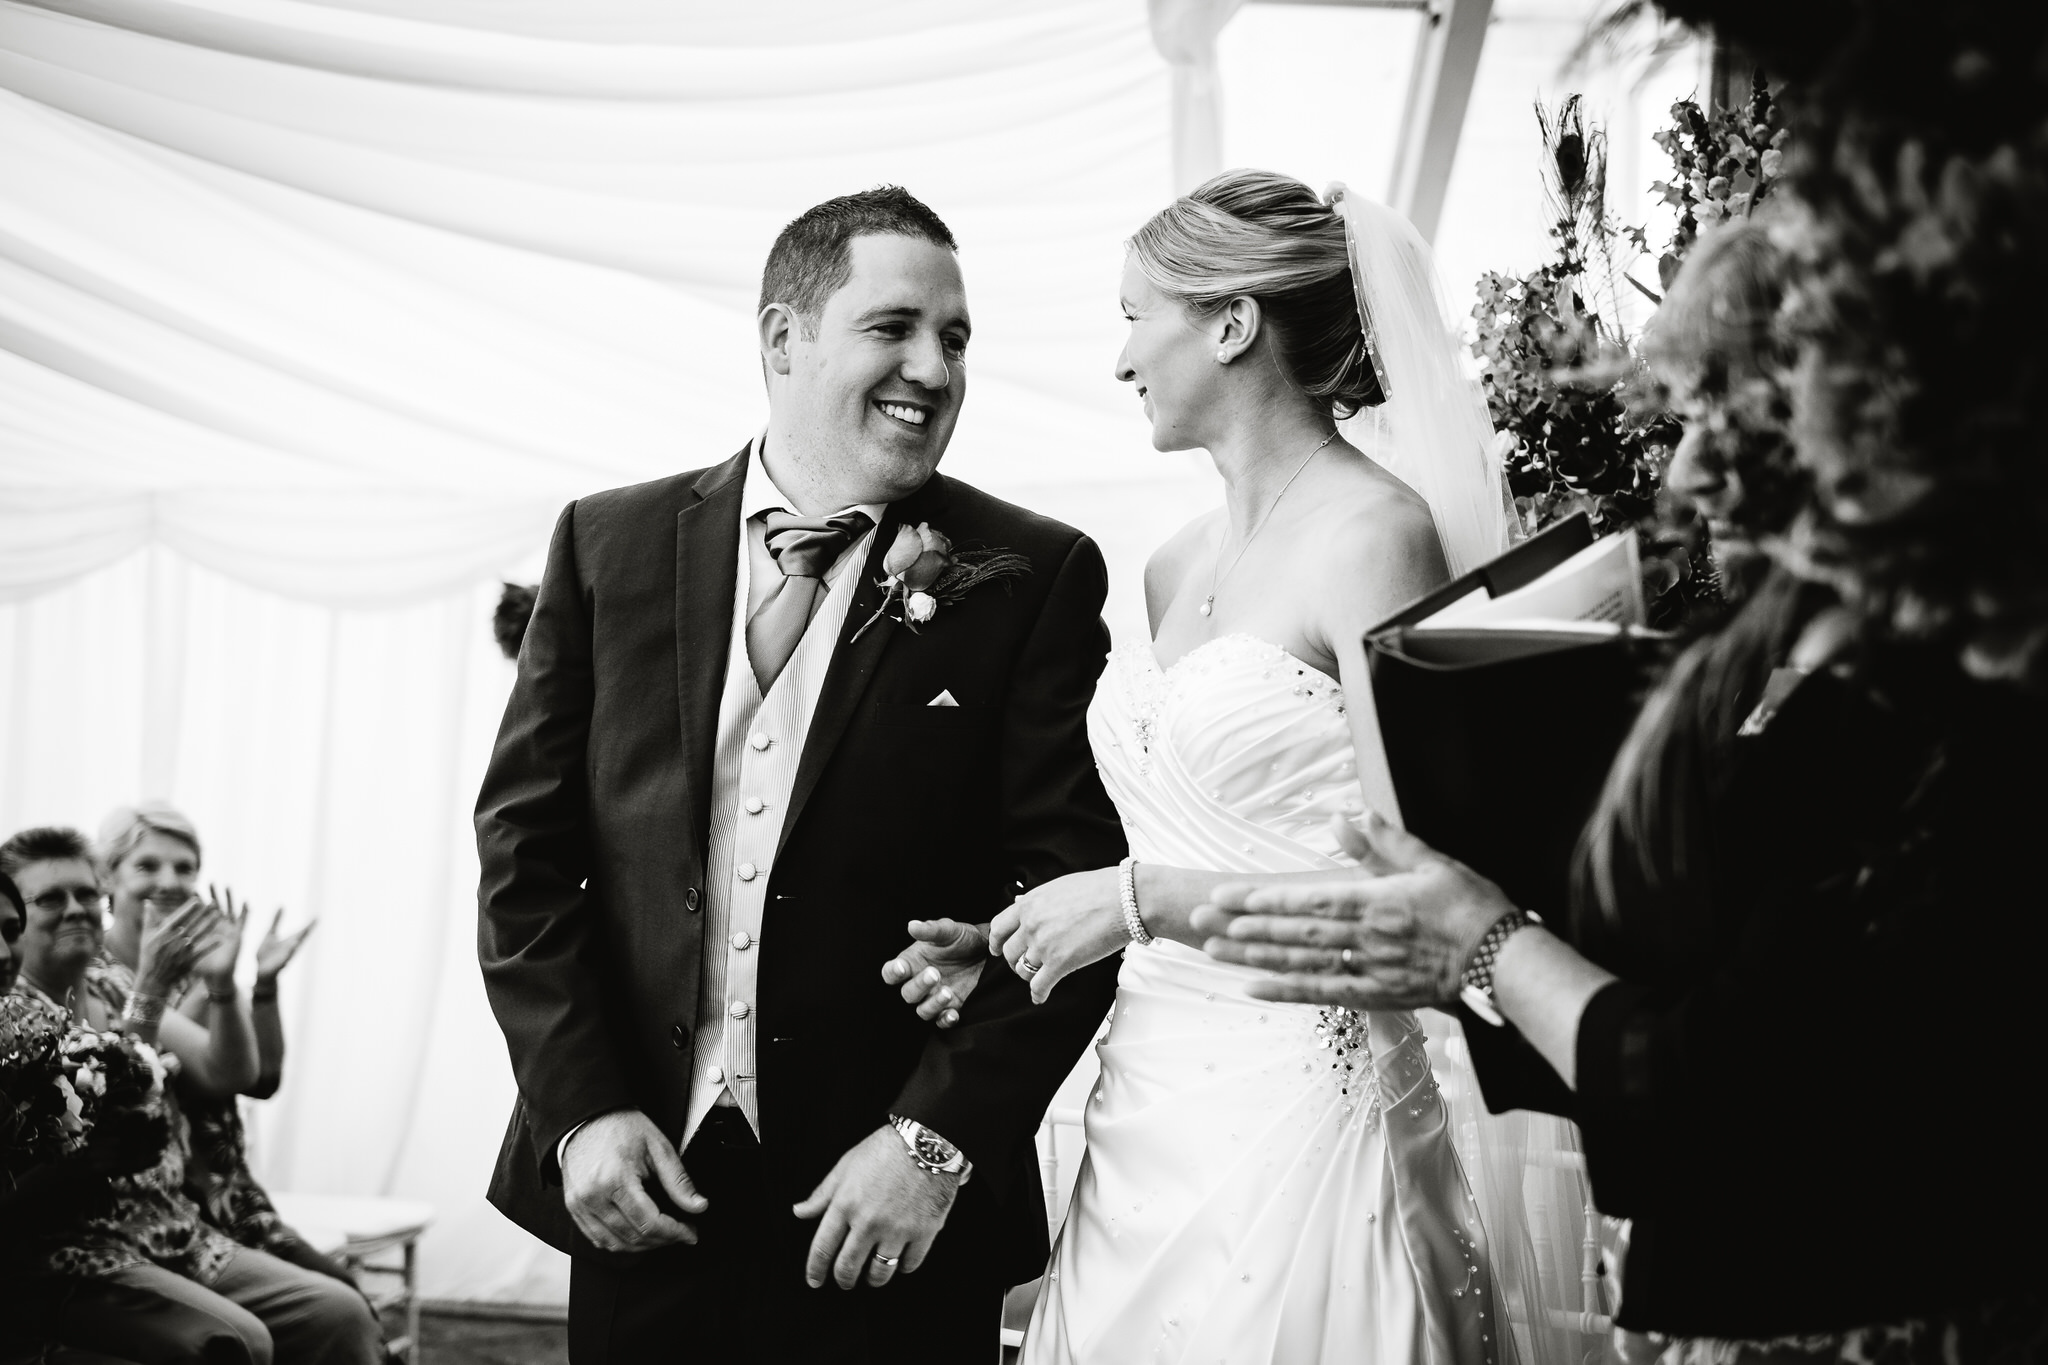 A bride and groom at a wedding at Poundon House, near Bicester, Oxfordshire